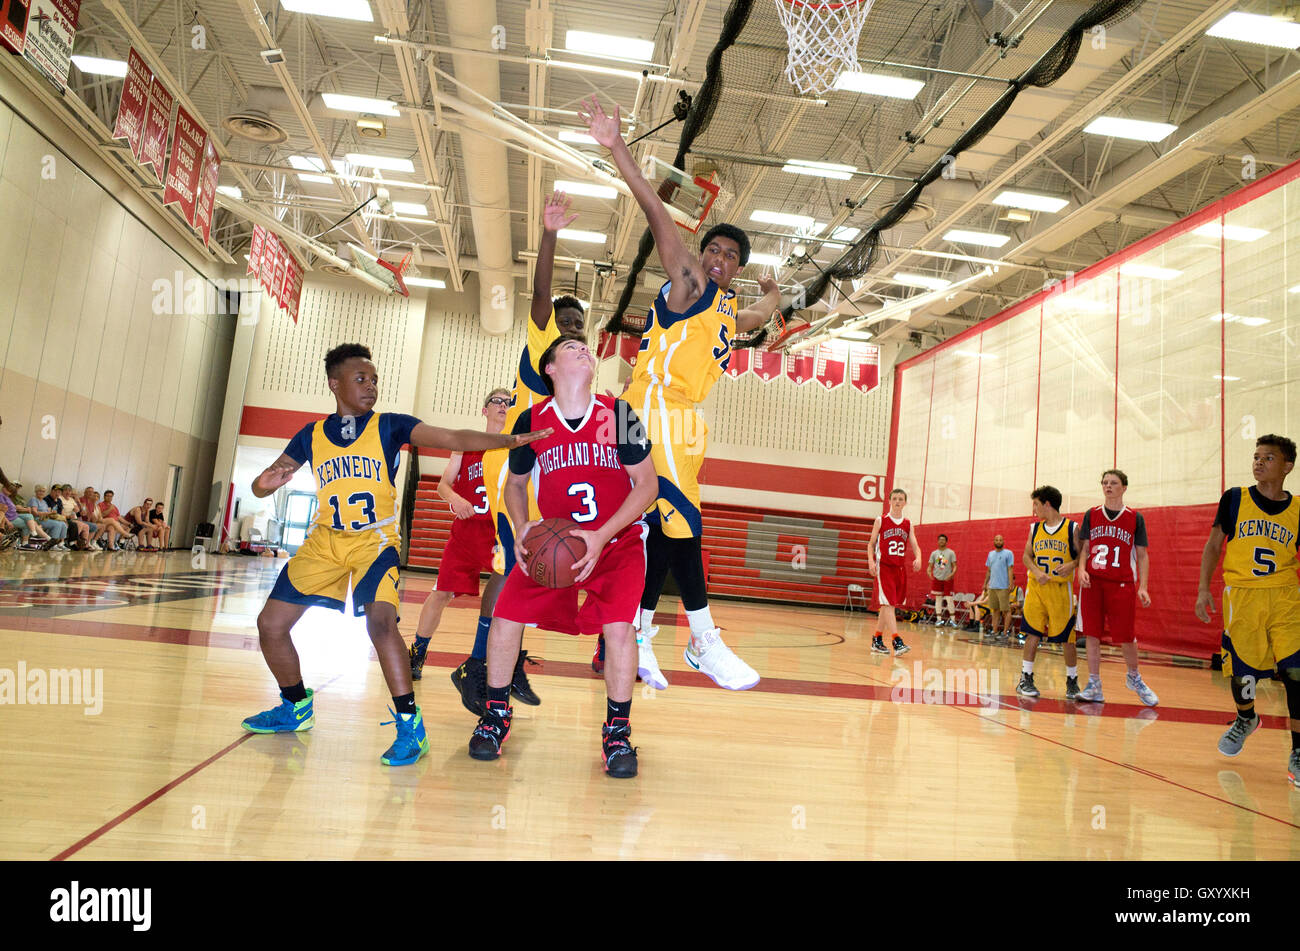 Black teen leaps to block shot in an exciting basketball game. North High School, White Bear Lake Minnesota MN USA - Stock Image